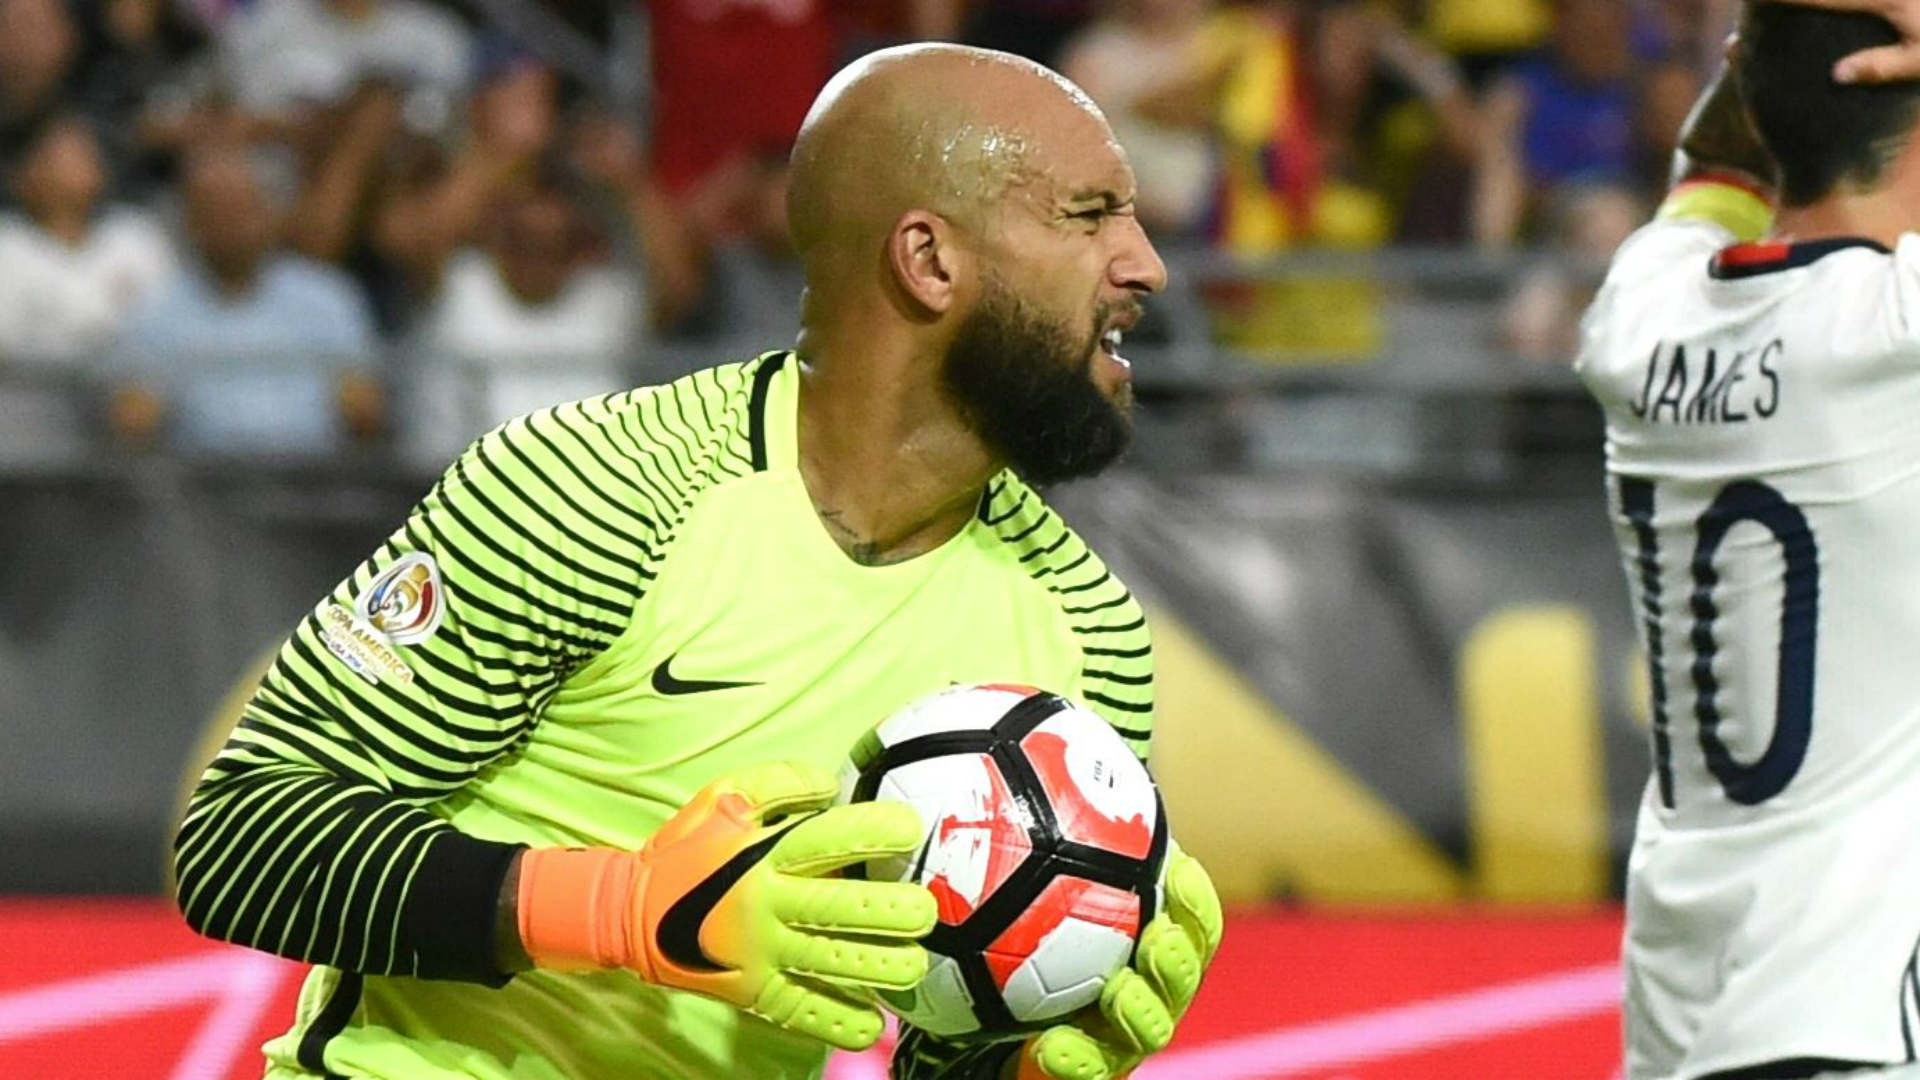 Goalkeeper Tim Howard to undergo surgery Thursday